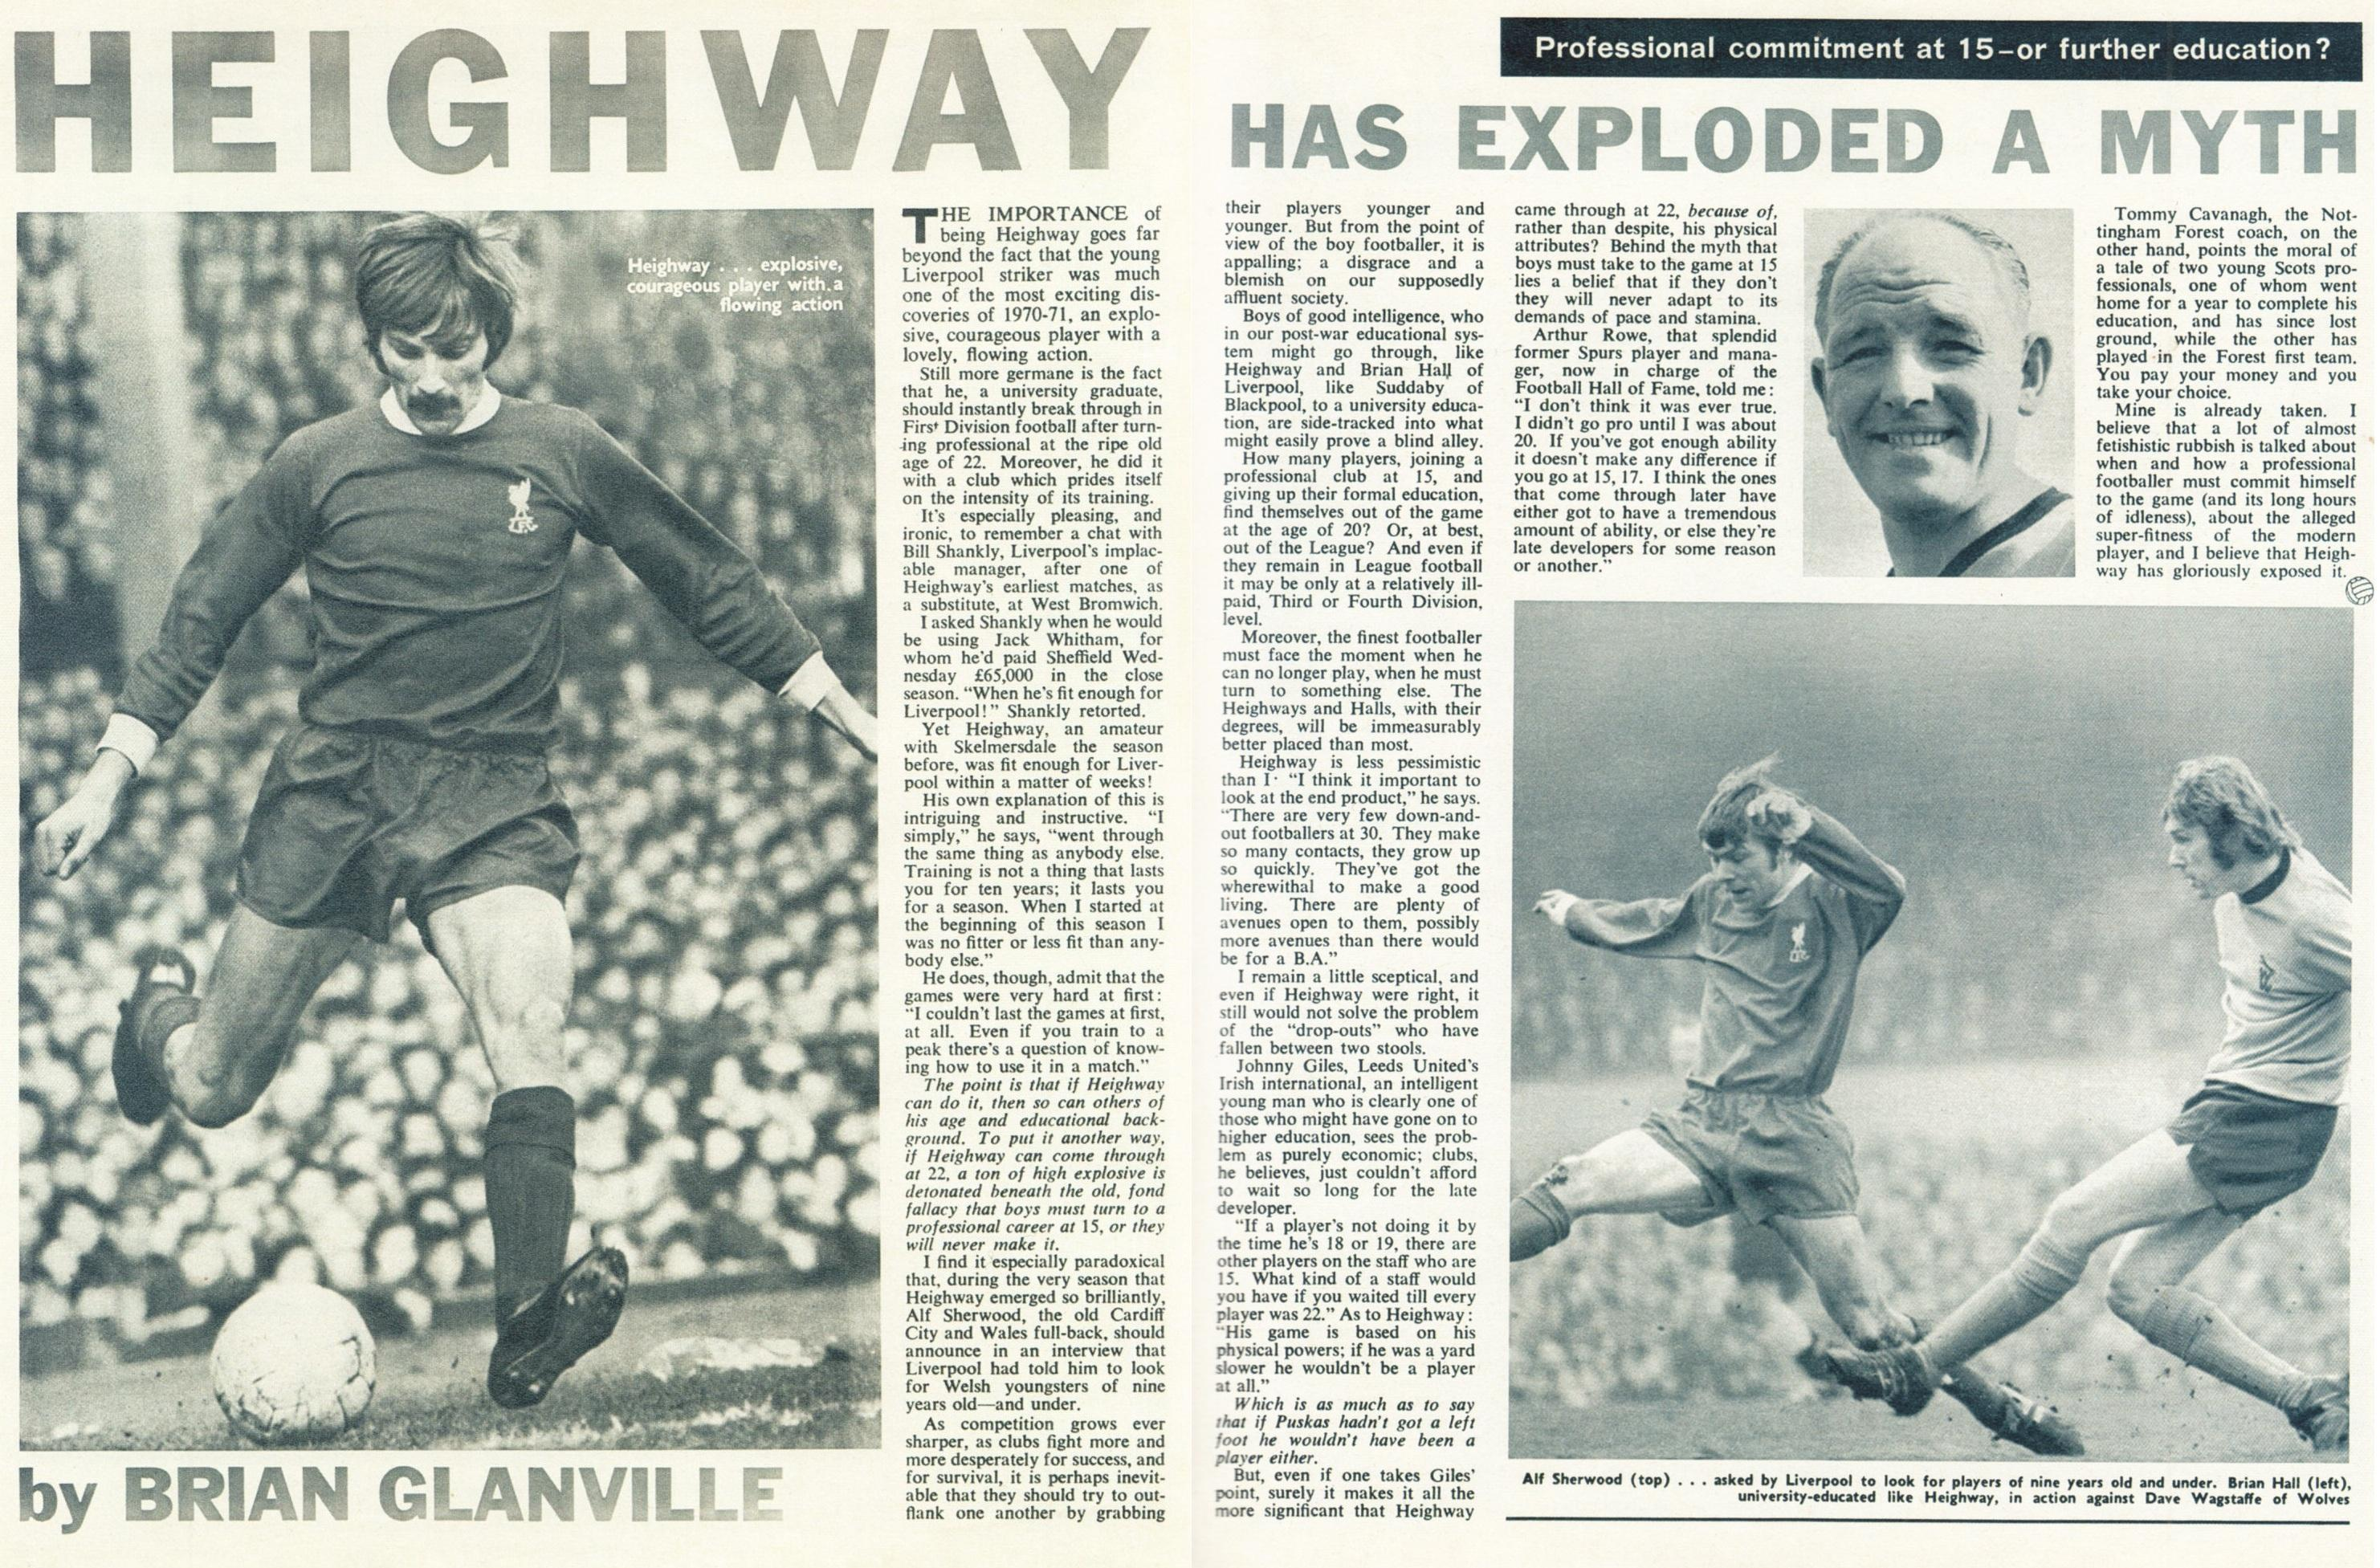 Heighway has exploded a myth - Football Monthly June 1971